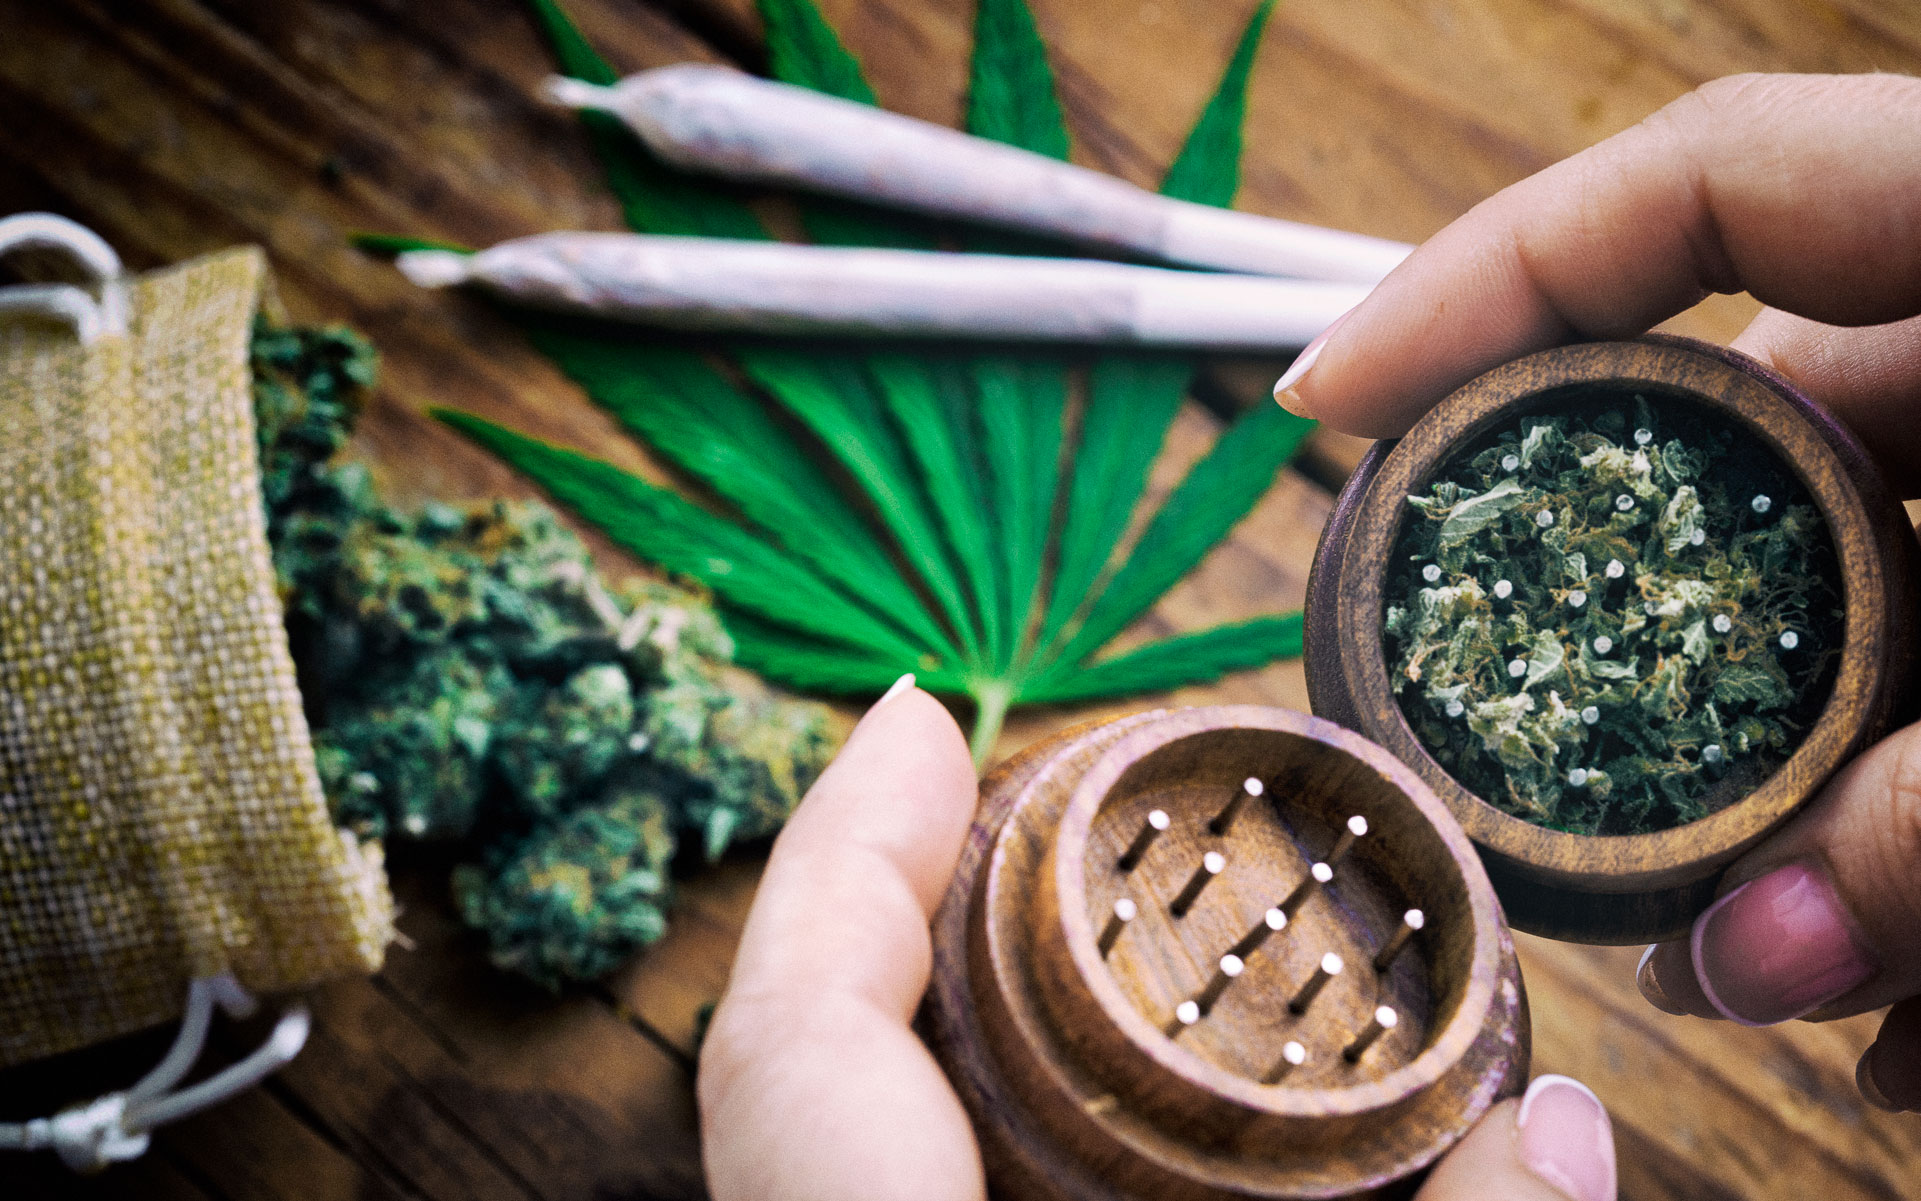 hemp CBD cannabis in grinder and joints